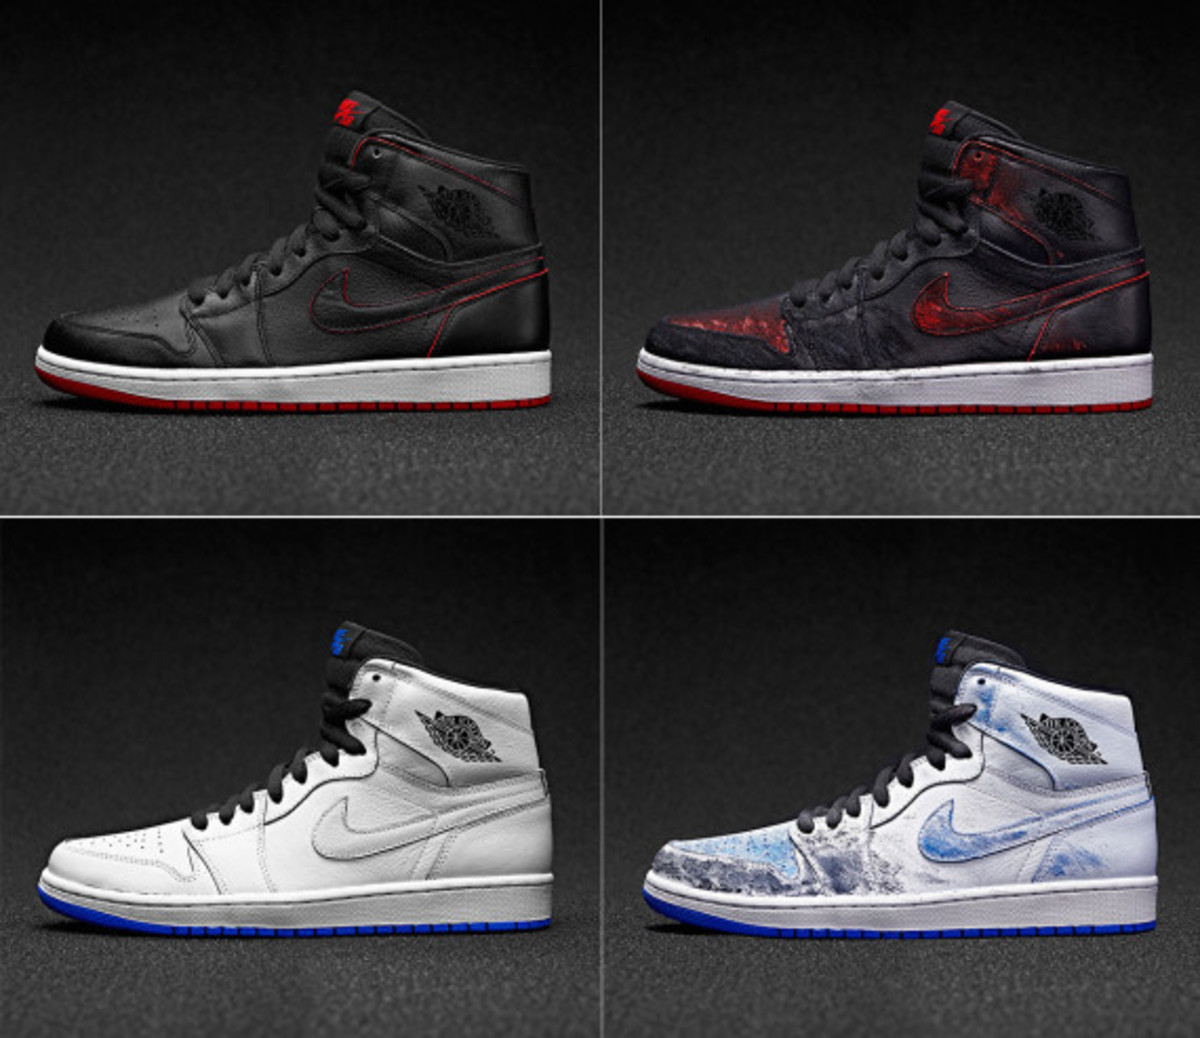 Nike SB x Air Jordan 1 by Lance Mountain - Officially Unveiled - 0